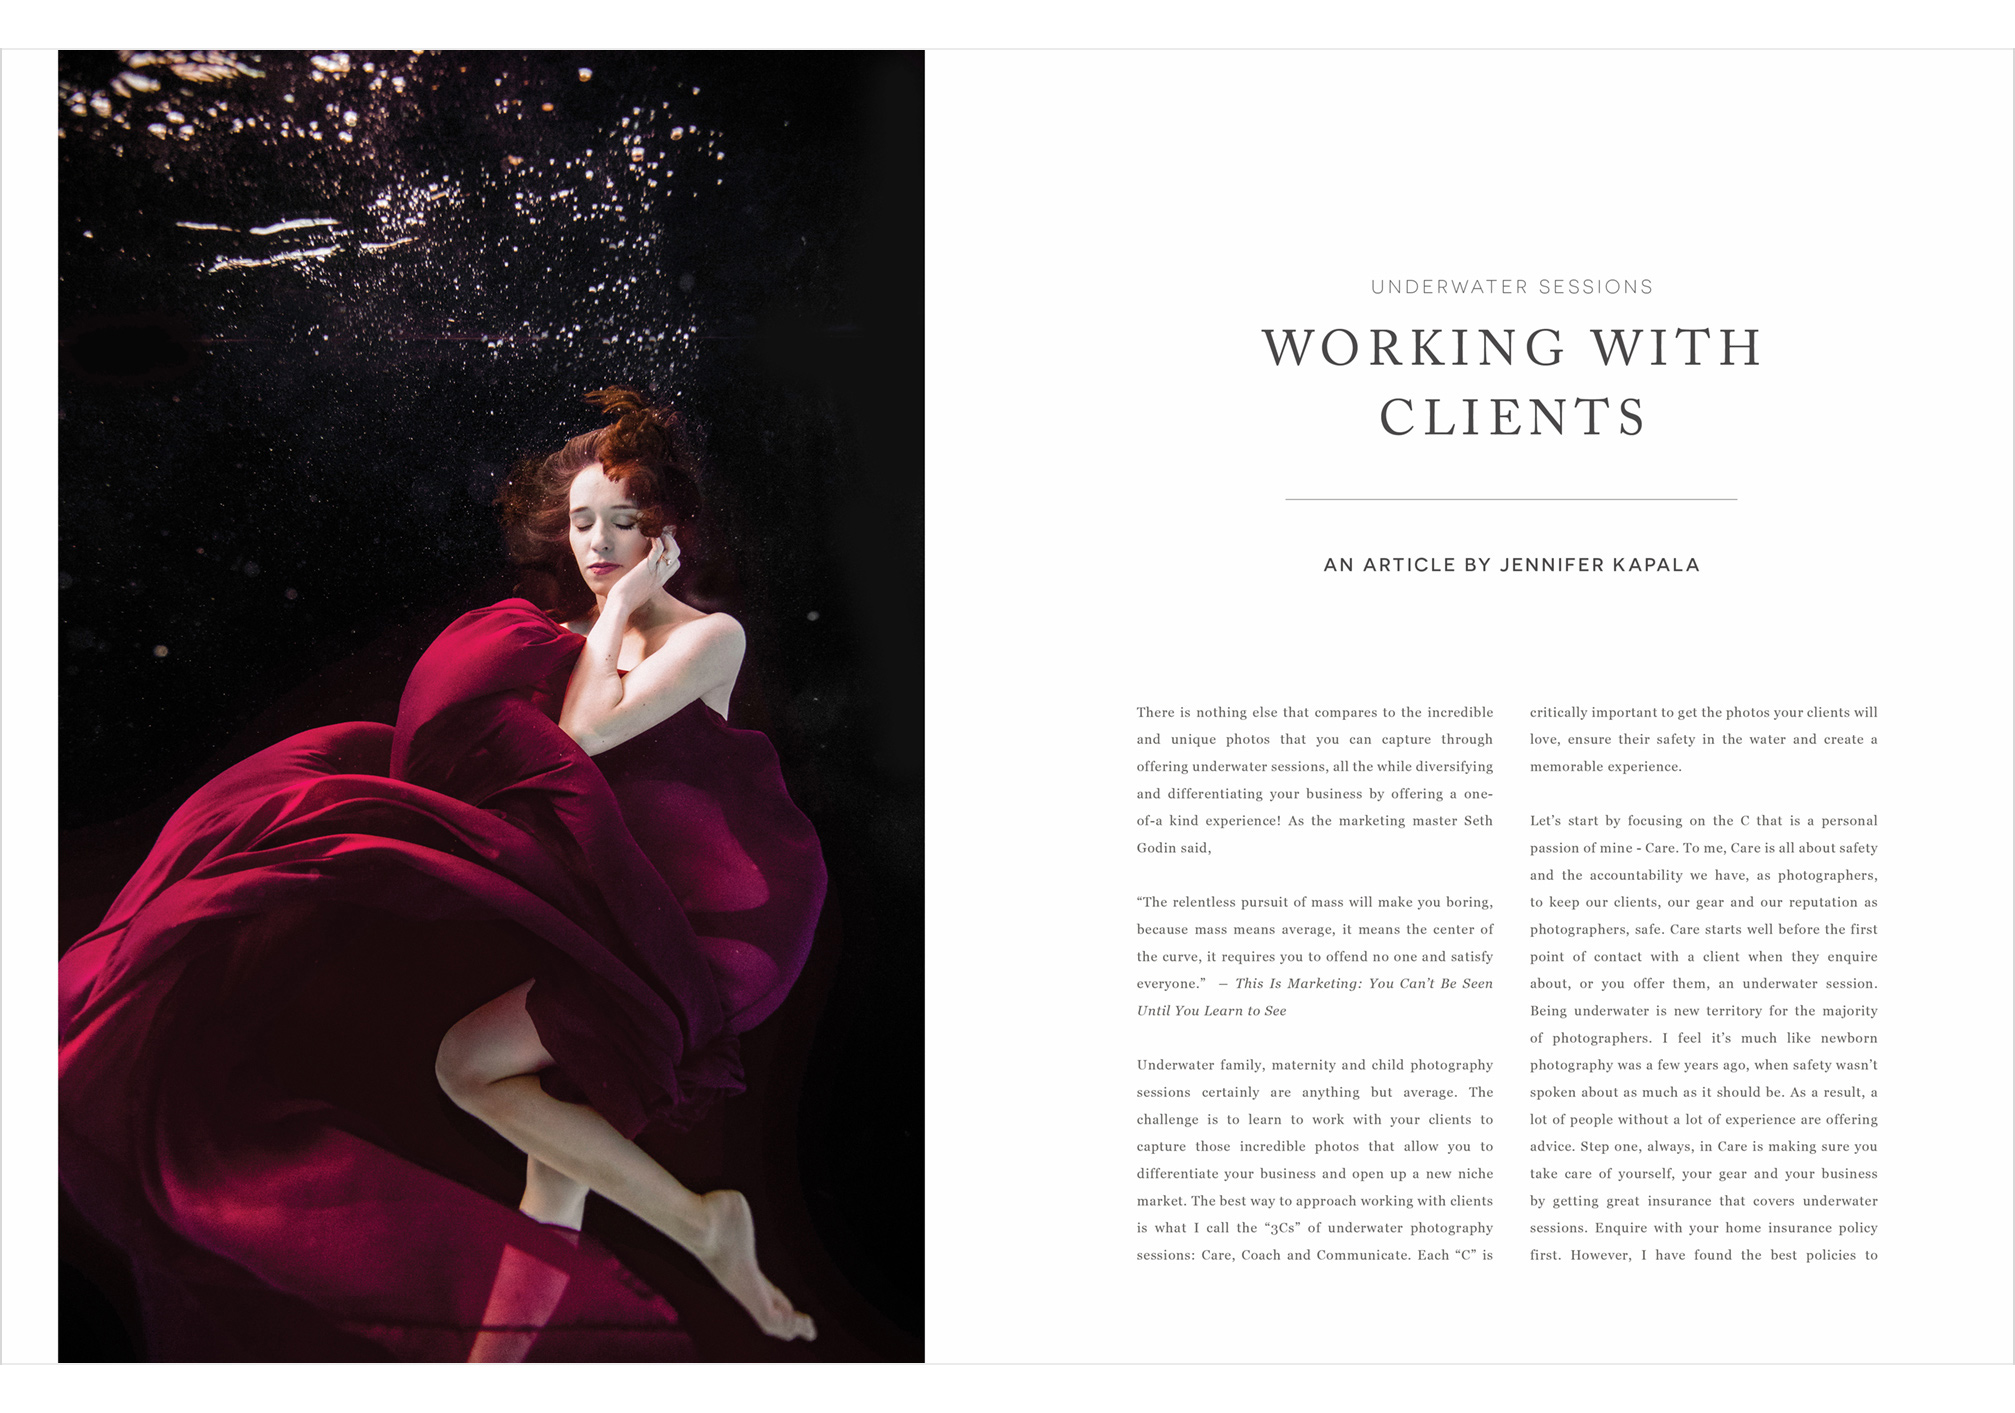 Underwater Sessions, Working with Clients, an article by Jennifer Kapala